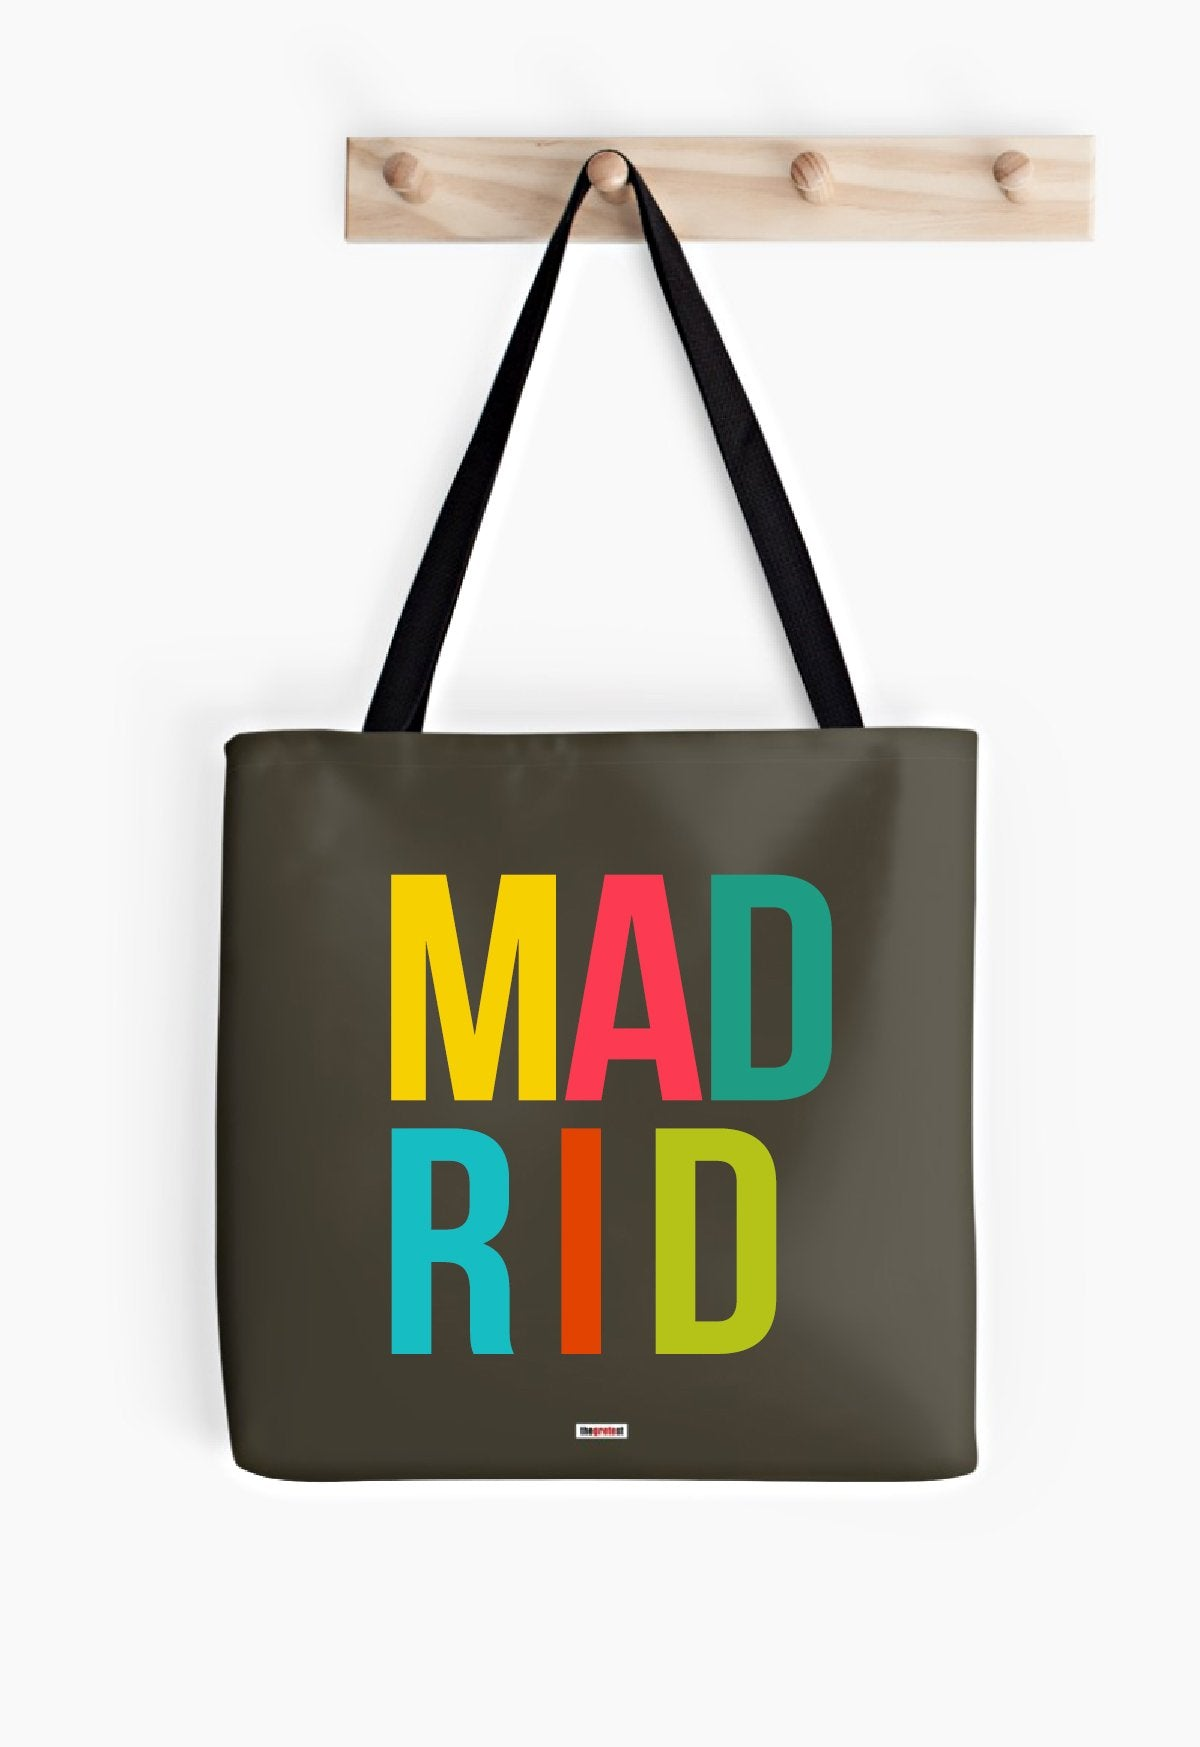 Madrid Tote bag - Madrid bag-TheGretest